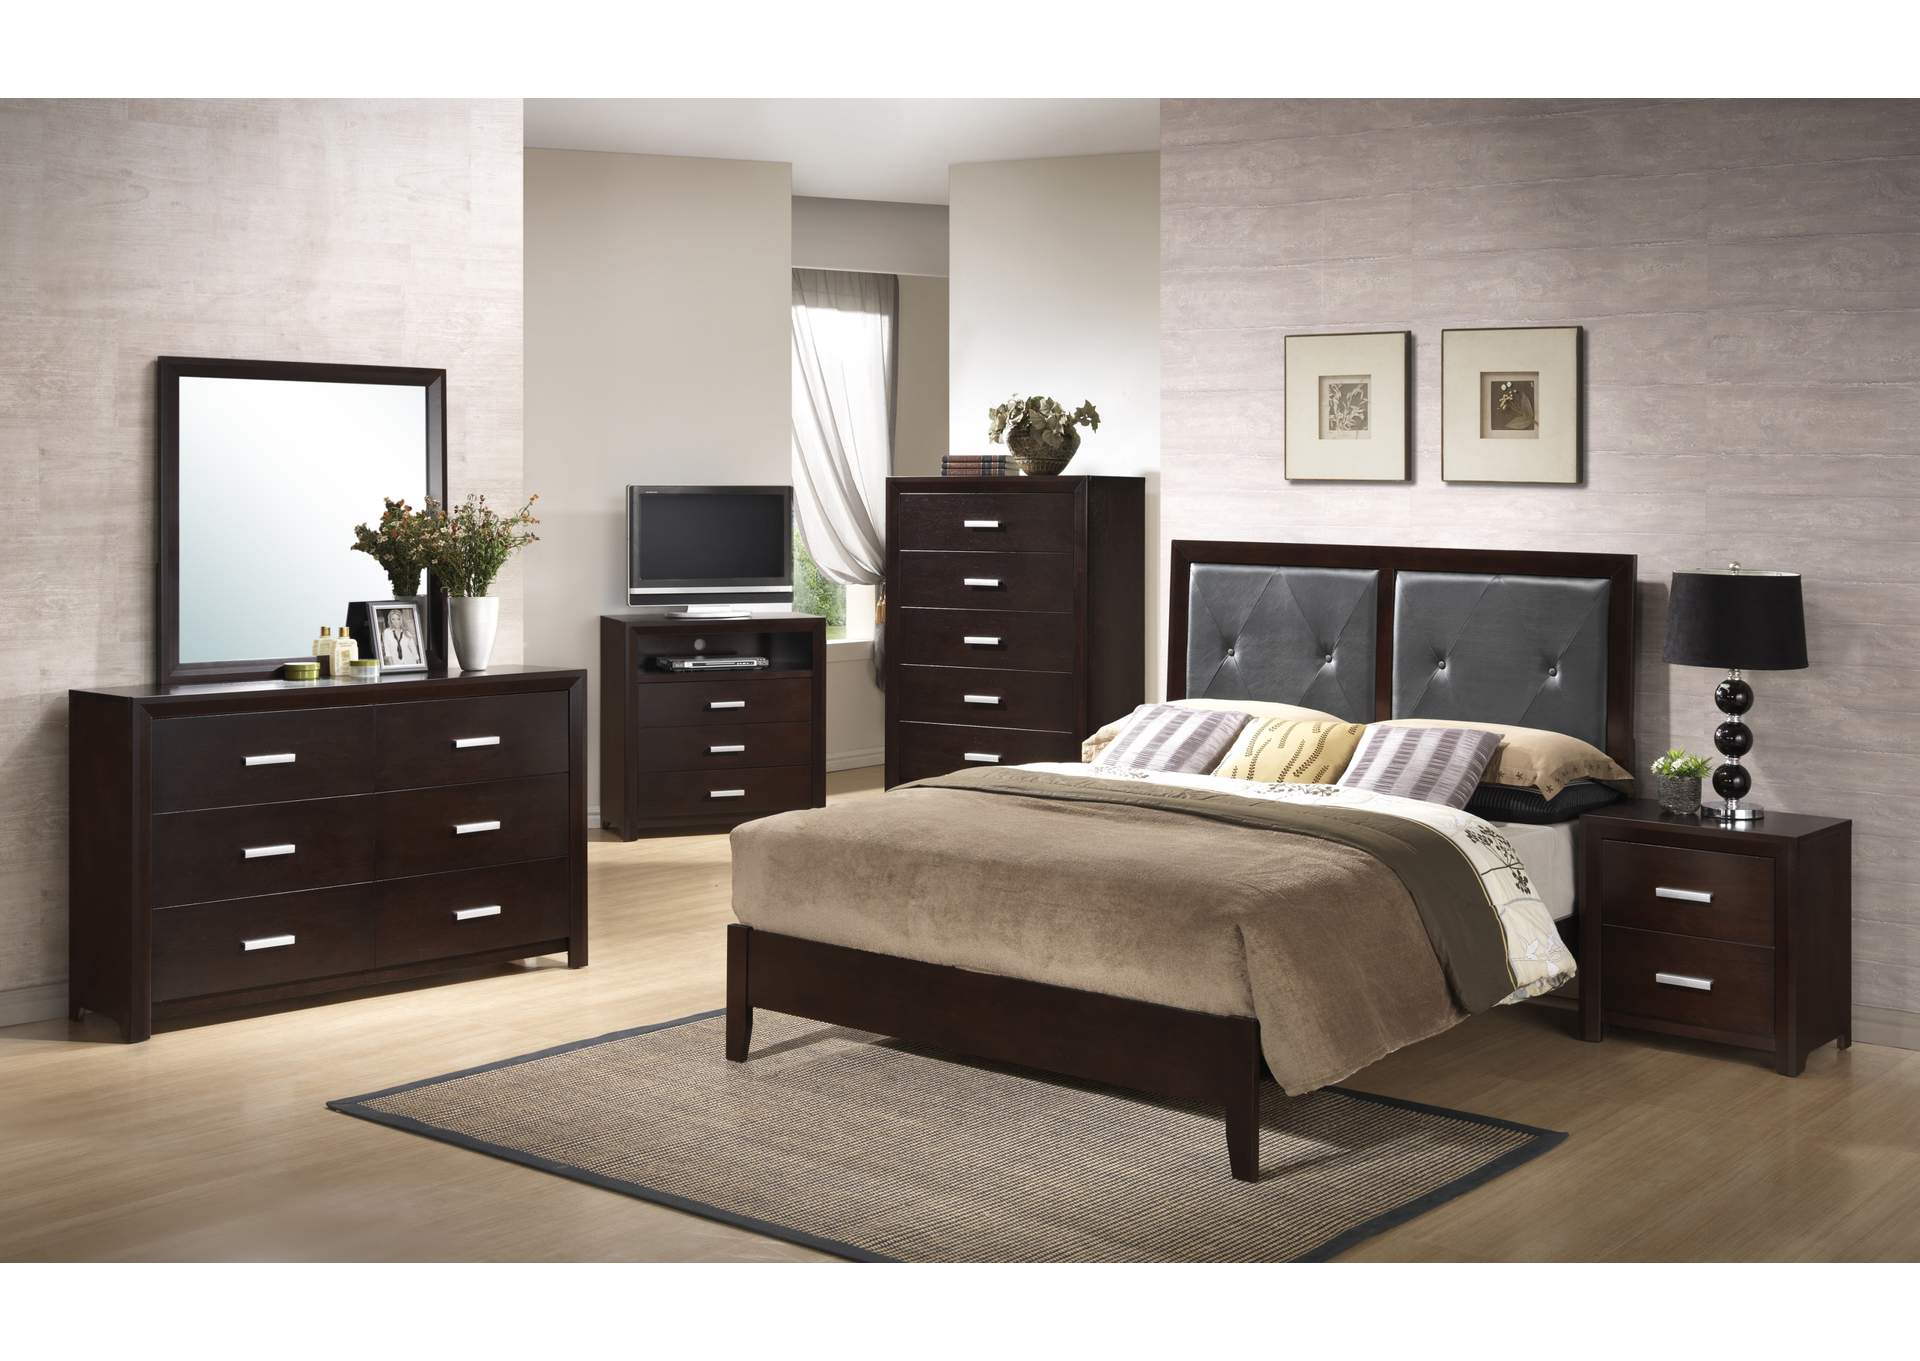 Cappuccino Panel Queen 4 Piece Bedroom Set W/ Nightstand, Dresser & Mirror,Global Trading